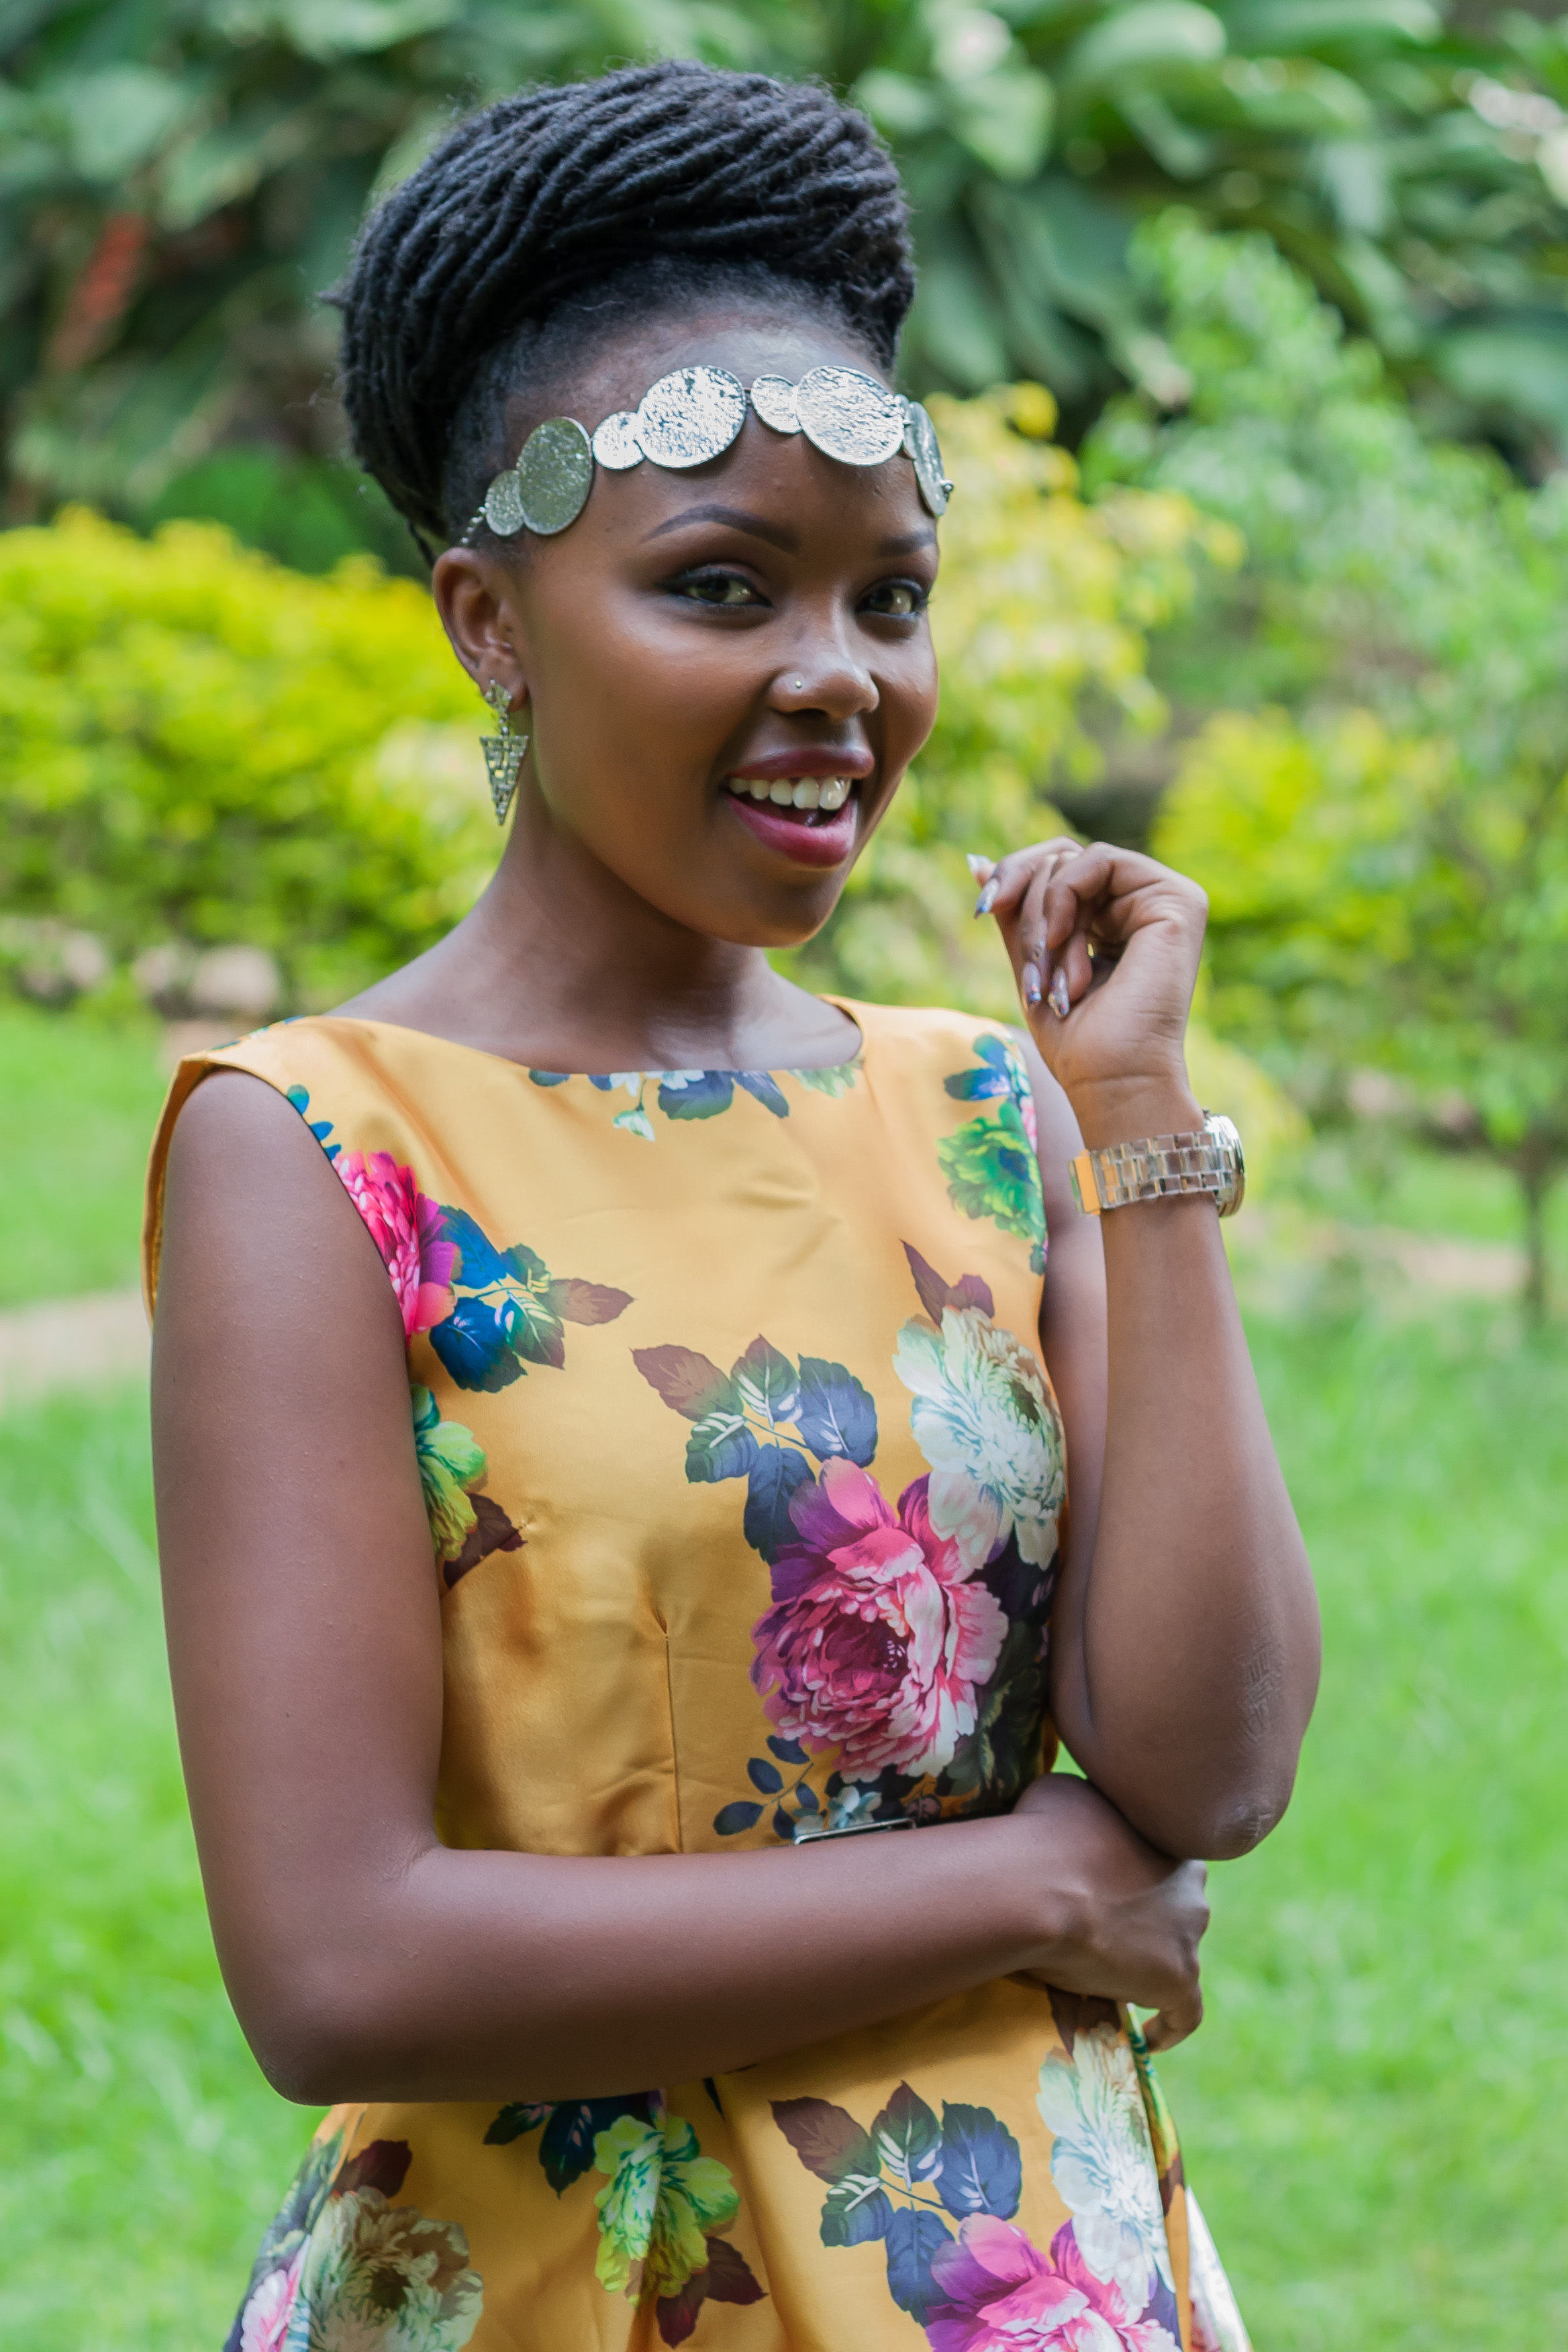 One of the five finalists, Ivlyn Mutua - M.S